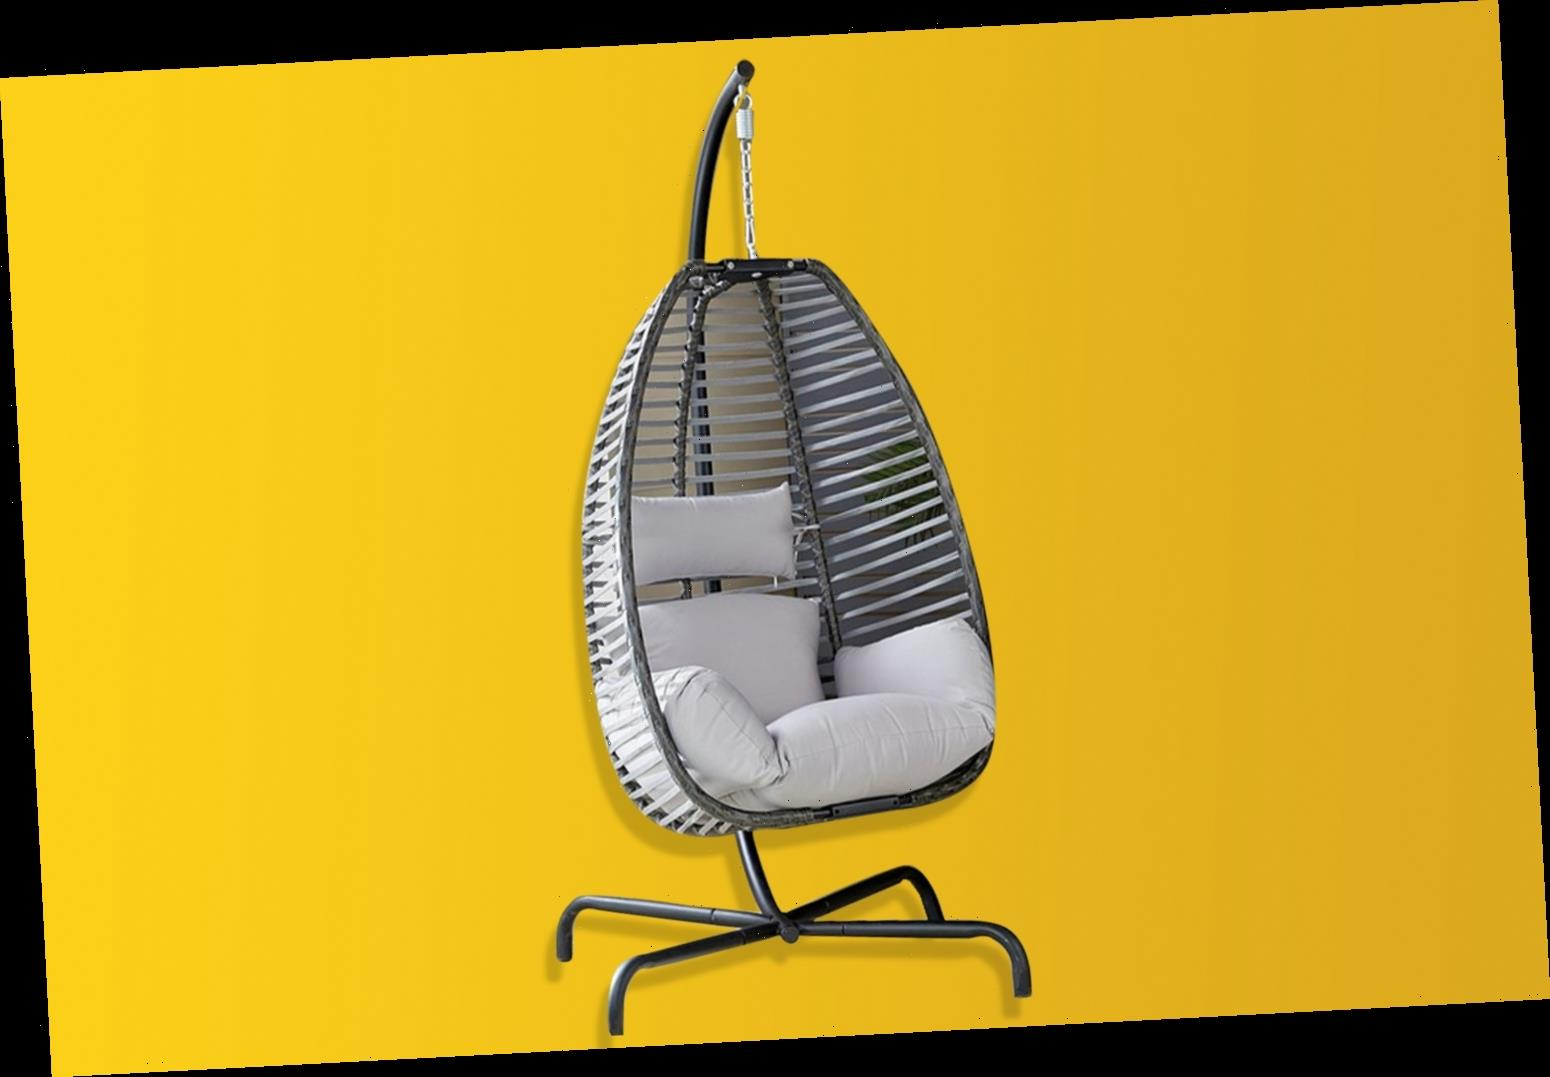 Studio is selling a hanging egg chair for £190